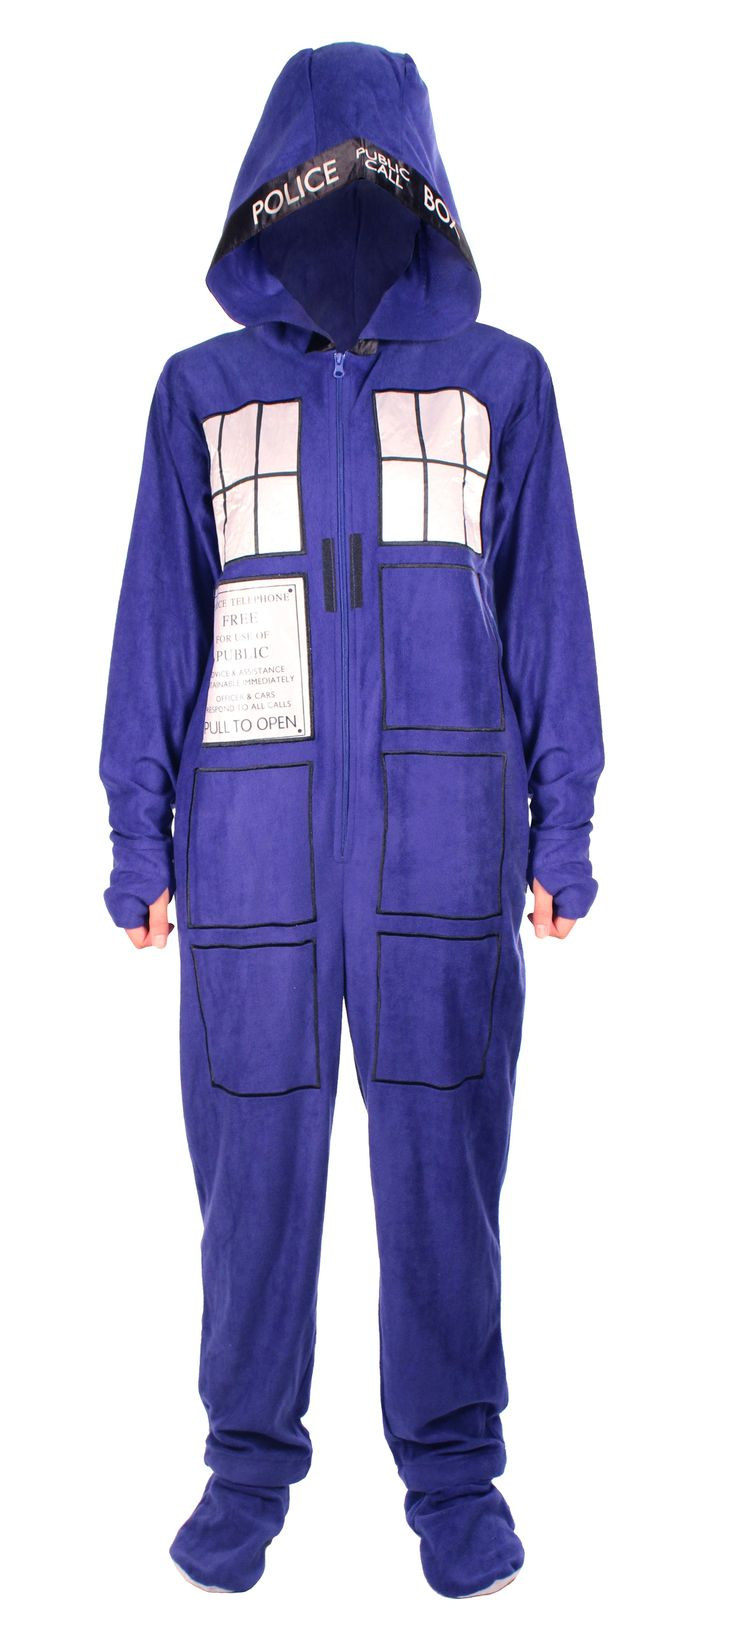 Doctor Who: Tardis Adult Onesie with Removable Feet | Doctor Who Shop ~~~I WANT!!~~~